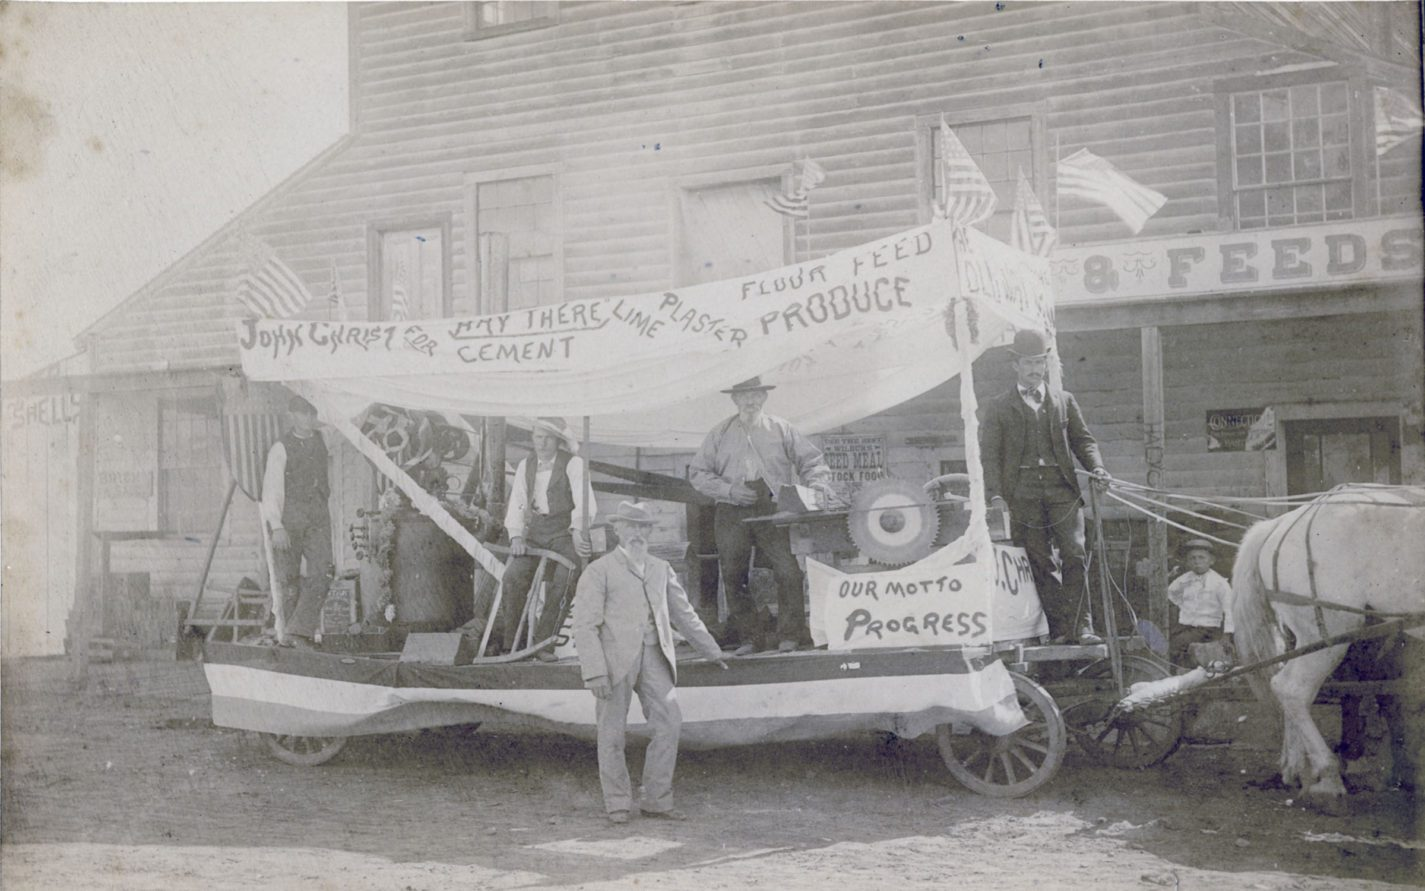 John Christ and his Fourth of July Float advertising his store